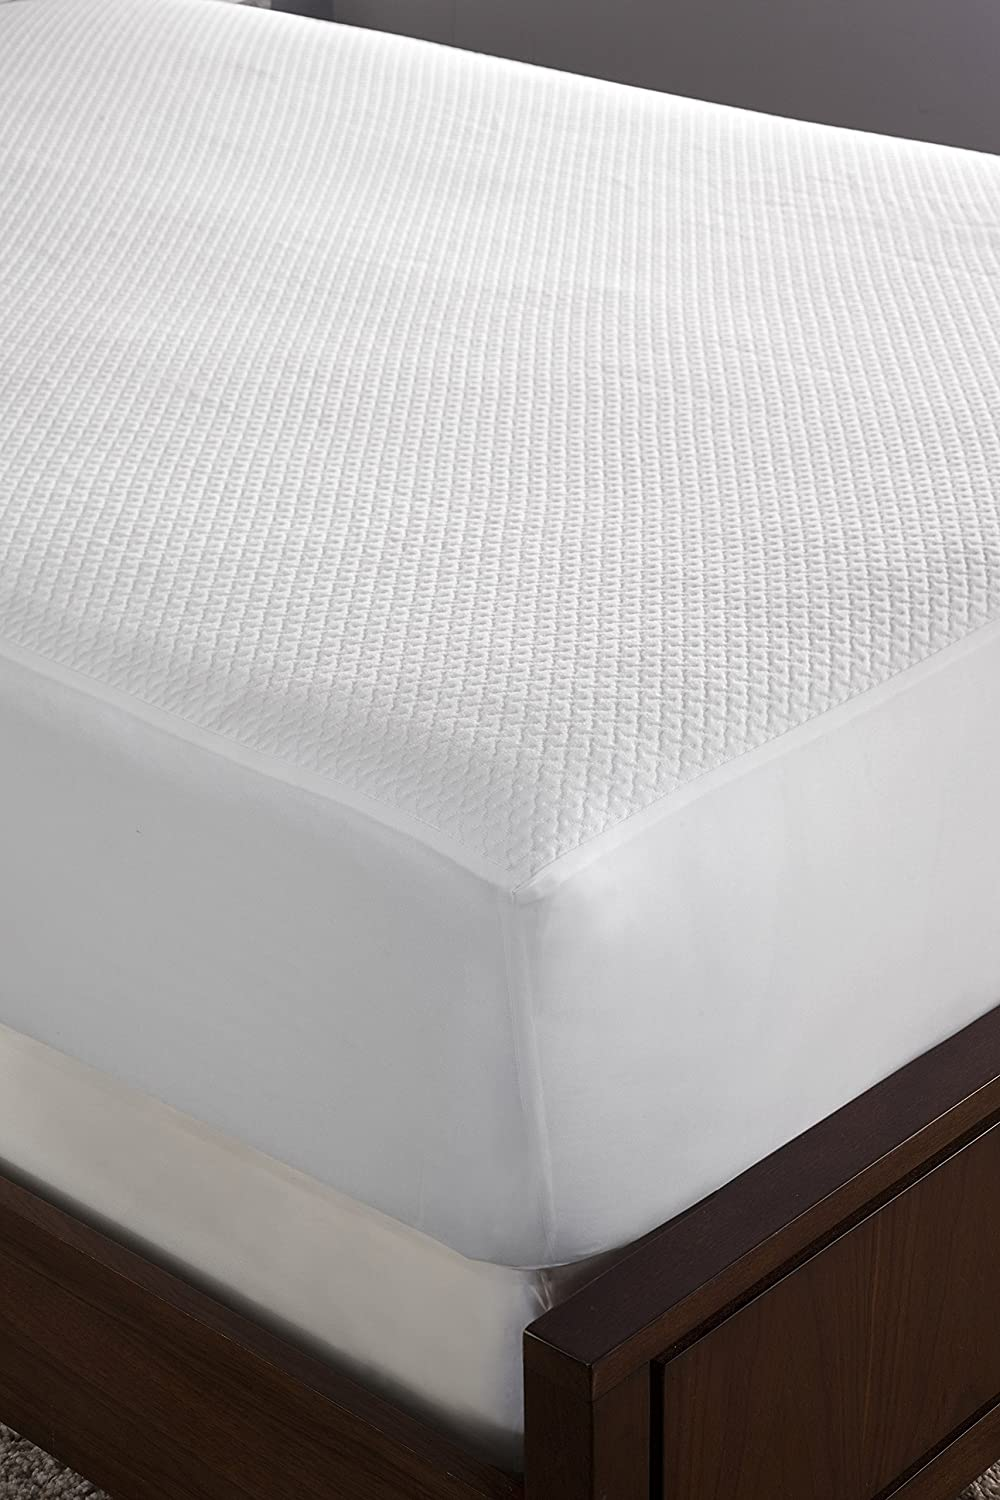 Perry Ellis Very Cool Mattress Protector, Queen, White